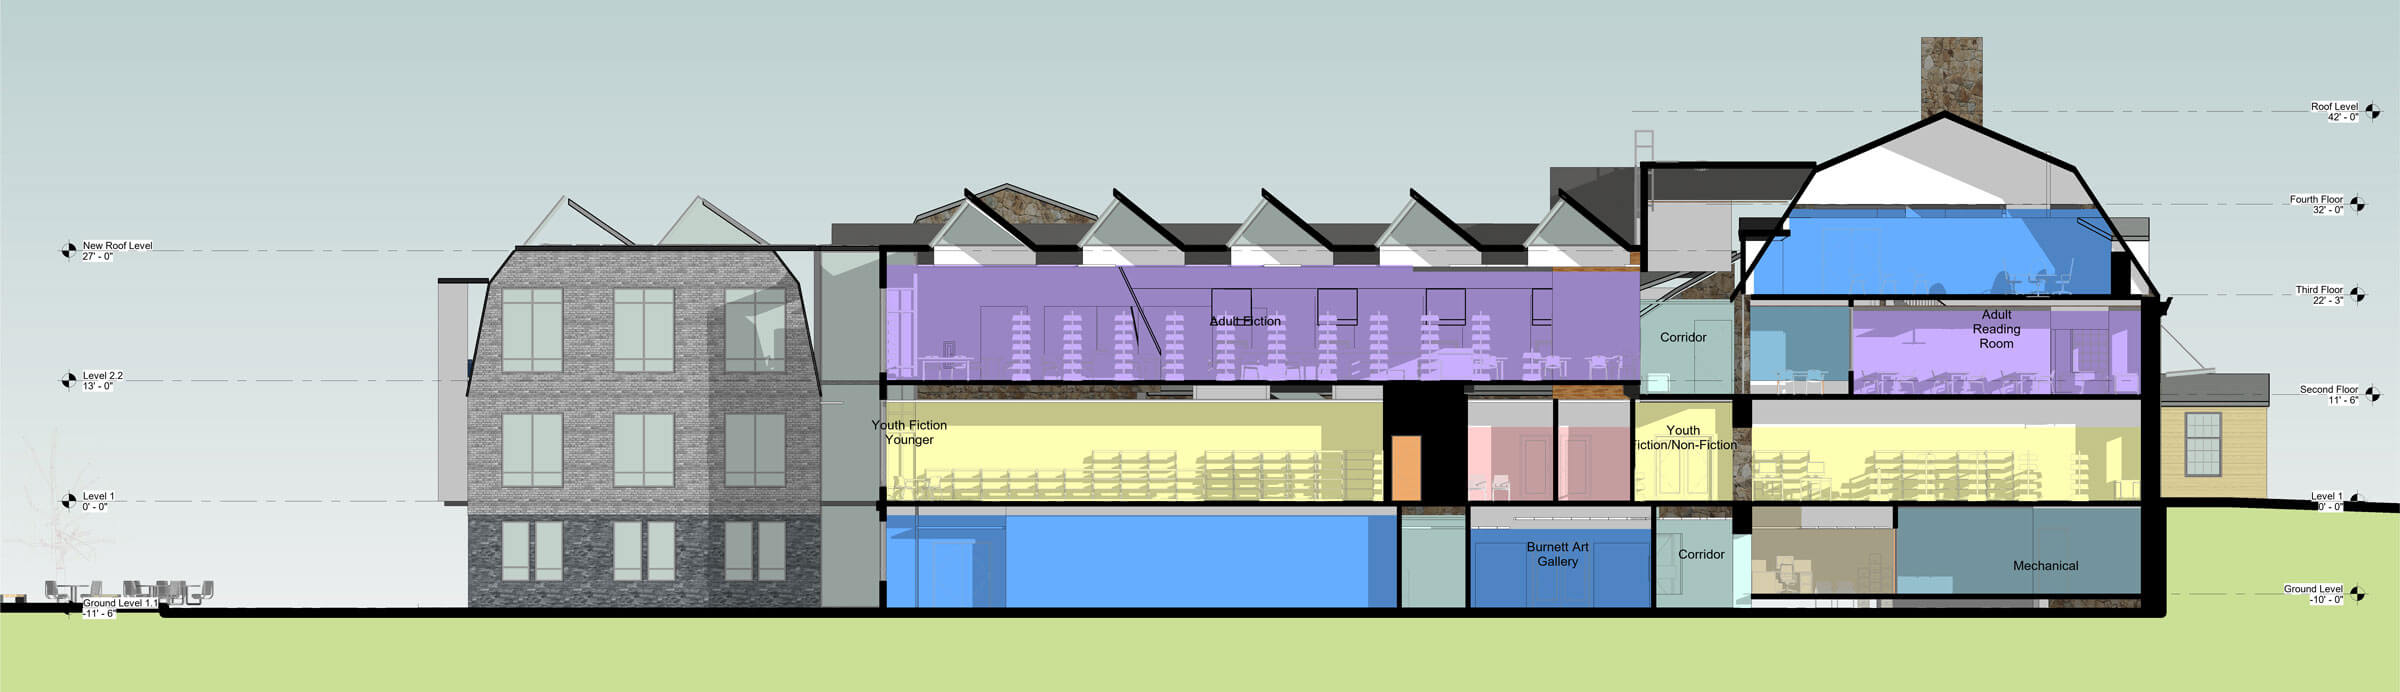 Building section through proposed Jones Library